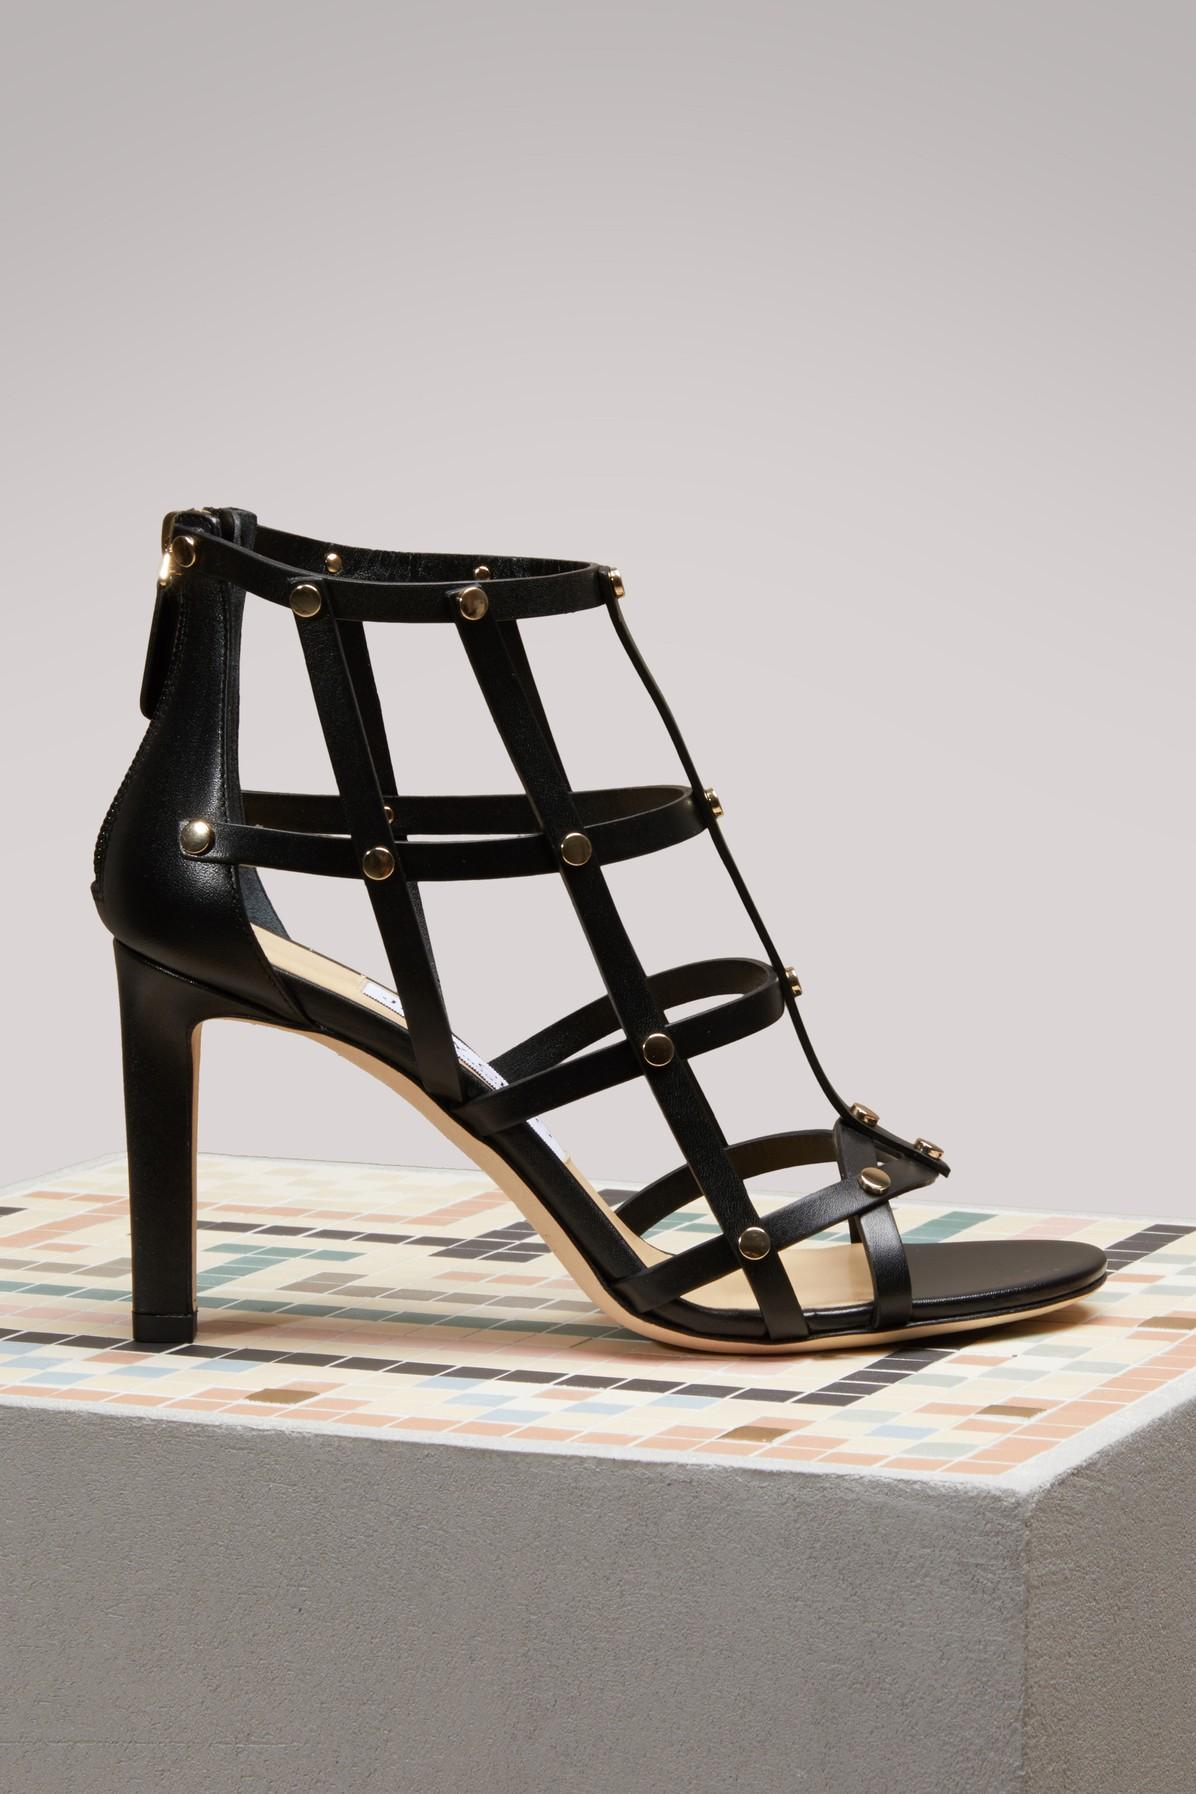 622fdf481d2 Jimmy Choo Tina 100 Black Calf Leather Sandals With Light Gold Studs In  Black Light